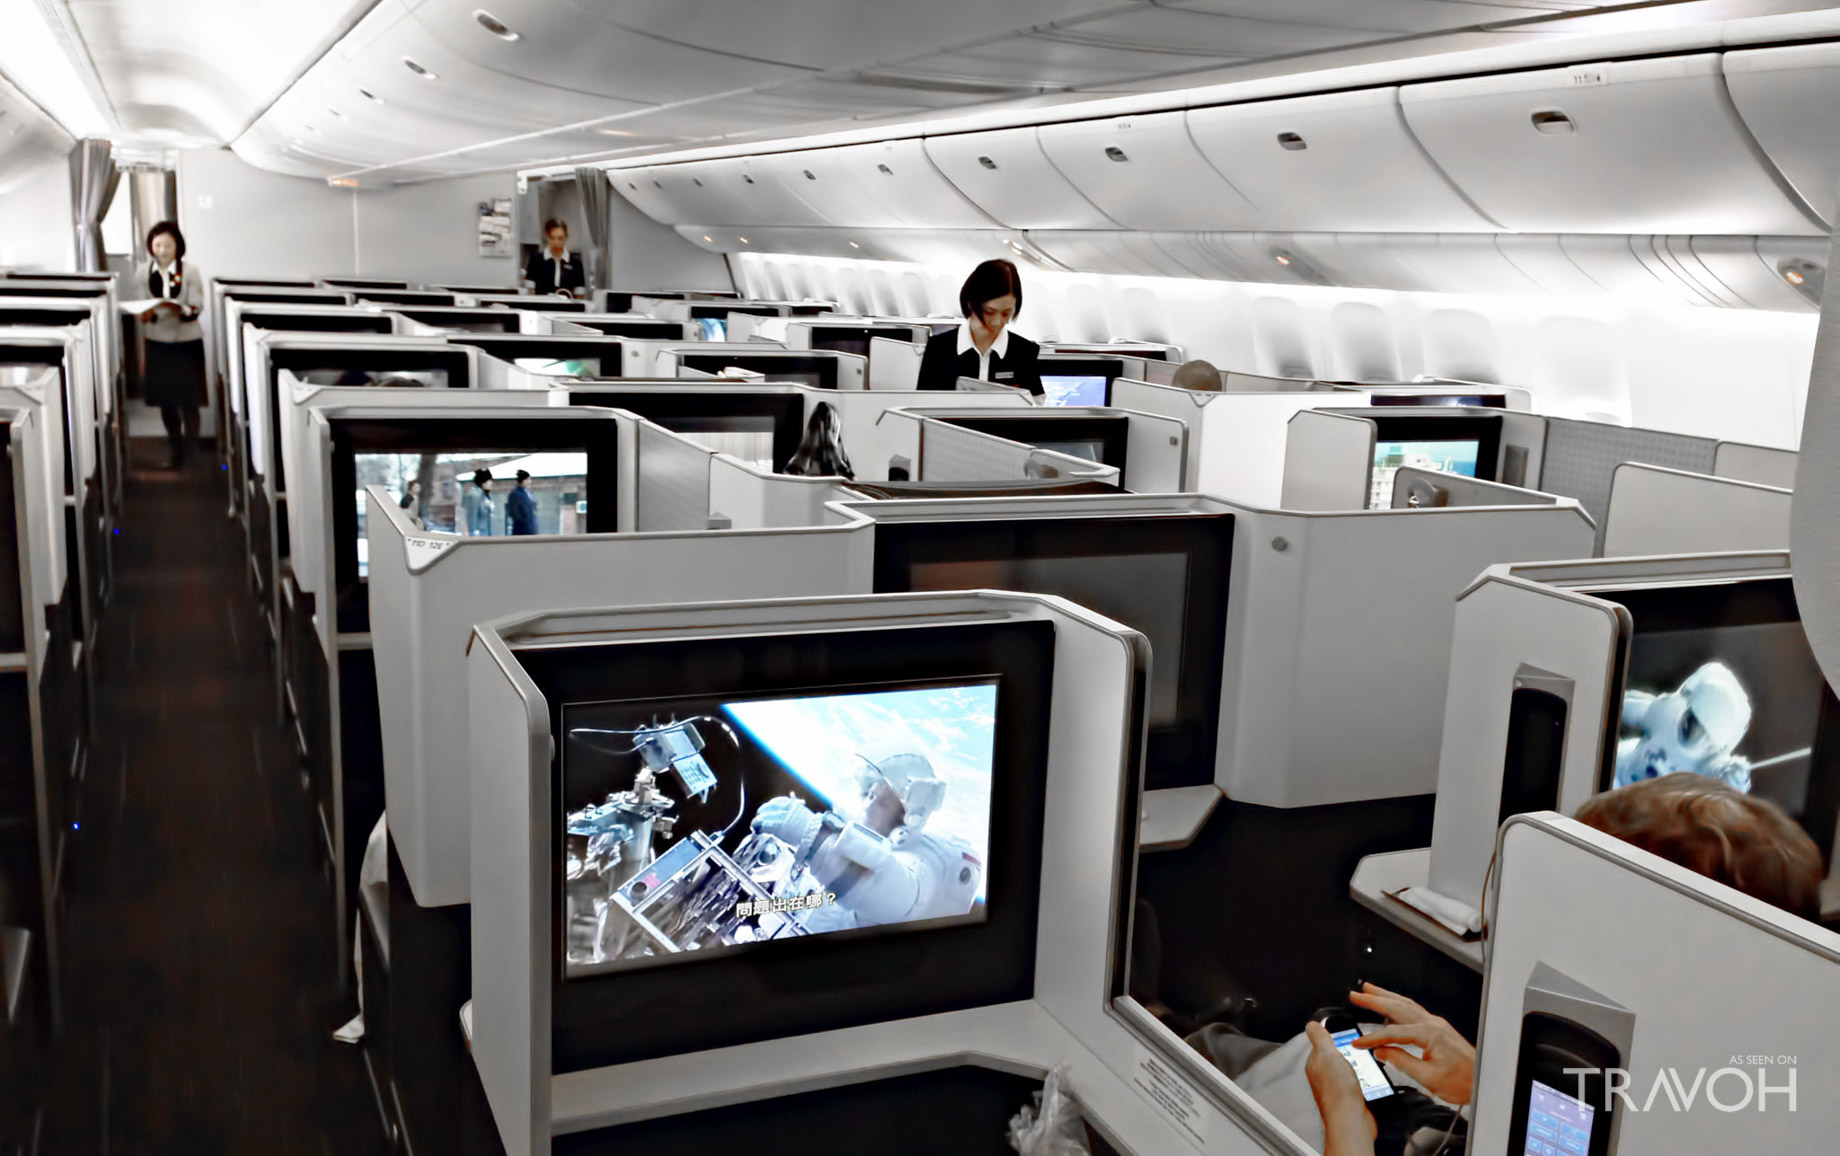 Japan Airlines – A New Travel Trend for Private Luxury Flights